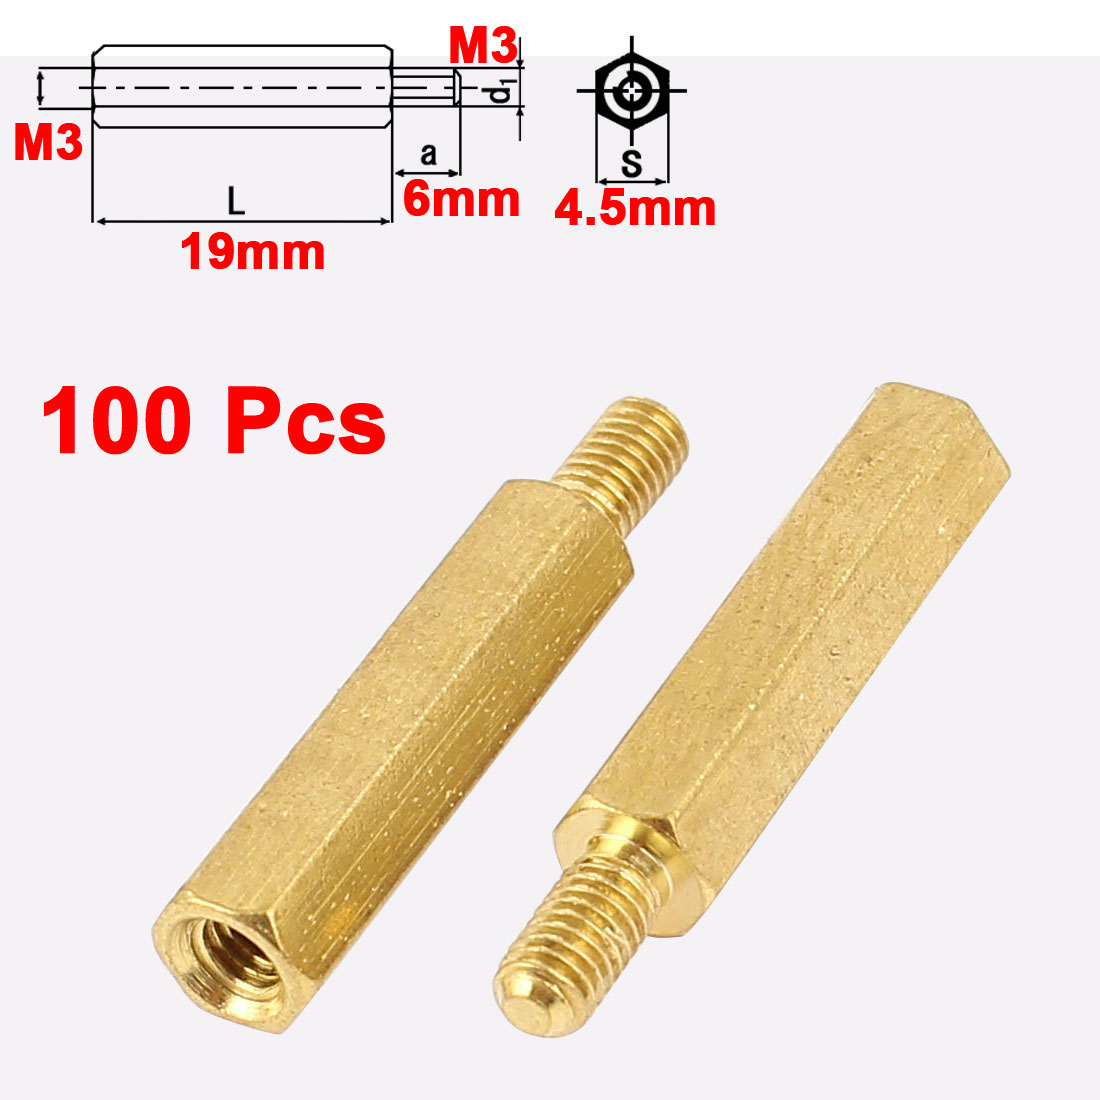 100Pcs M3 Male to Female 19mm+6mm Screw Threaded Brass Hex Standoff Spacer for PCB Motherboard